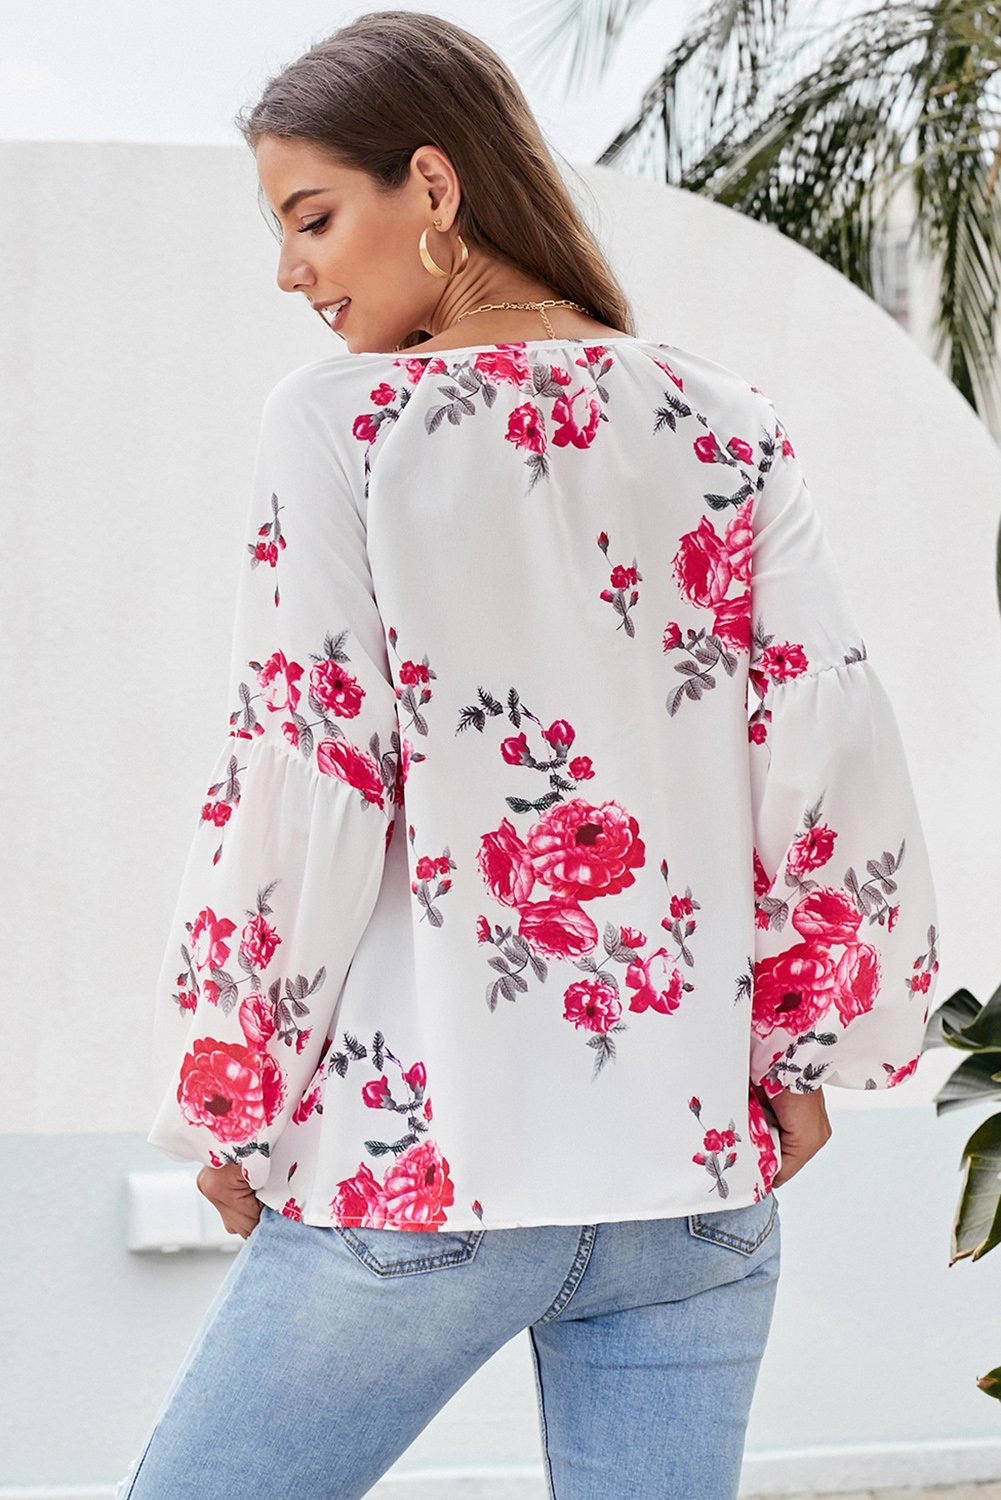 Red Ballon Sleeve Floral Shirt Top-Tops, Blouses & Shirts-Azura Exchange